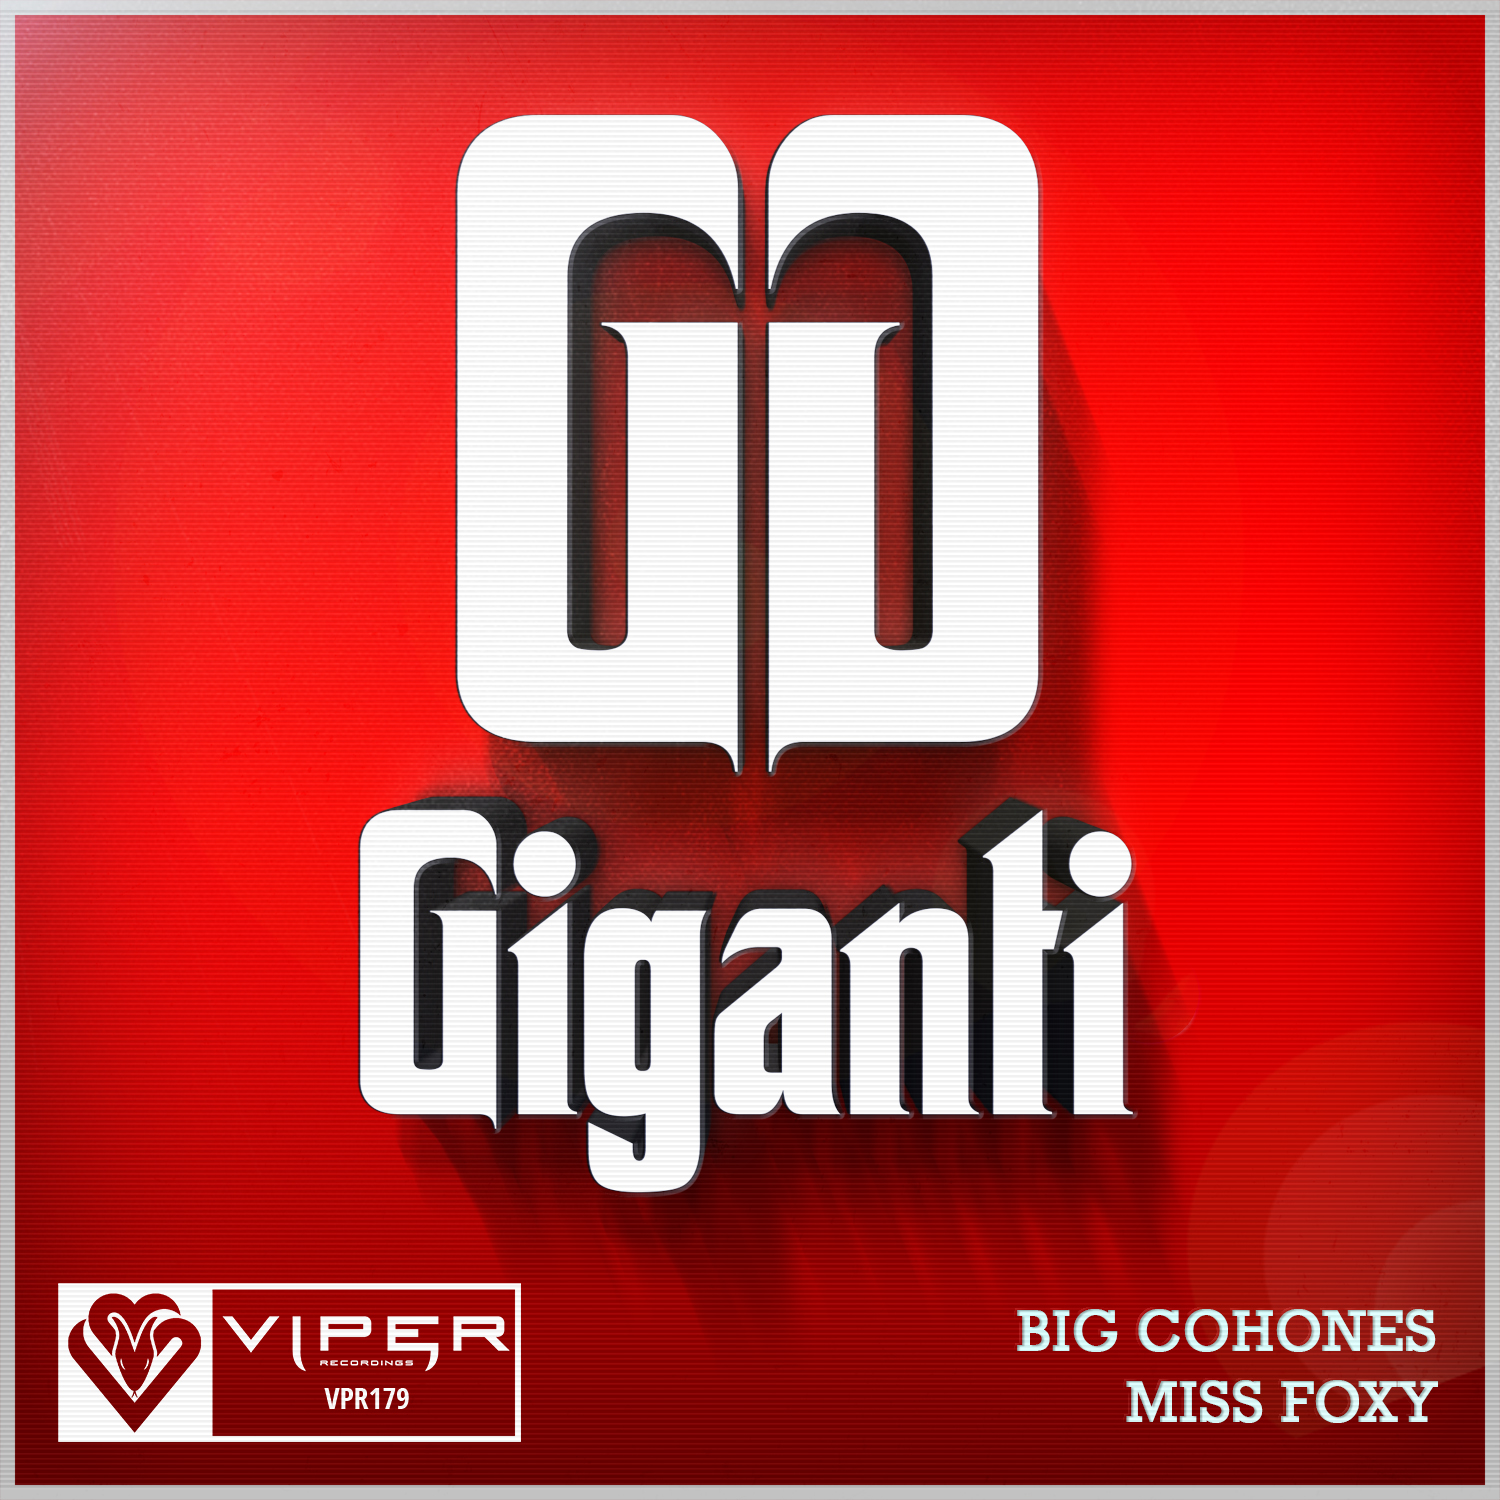 GIGANTI - BIG COHONES / MISS FOXY [VPR179]